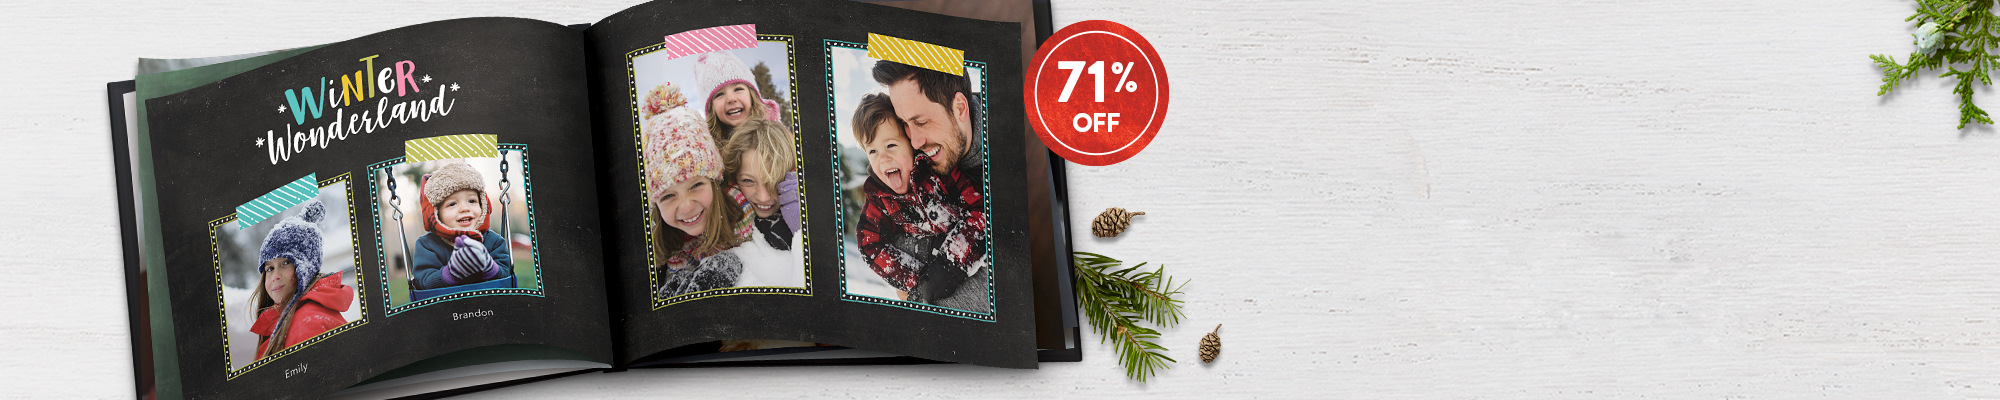 Photo Books : Bring home a best seller! Regularly $34.99, now save $25 on our 8x11 Hardcover Photo Book. Use code BESTBOOK